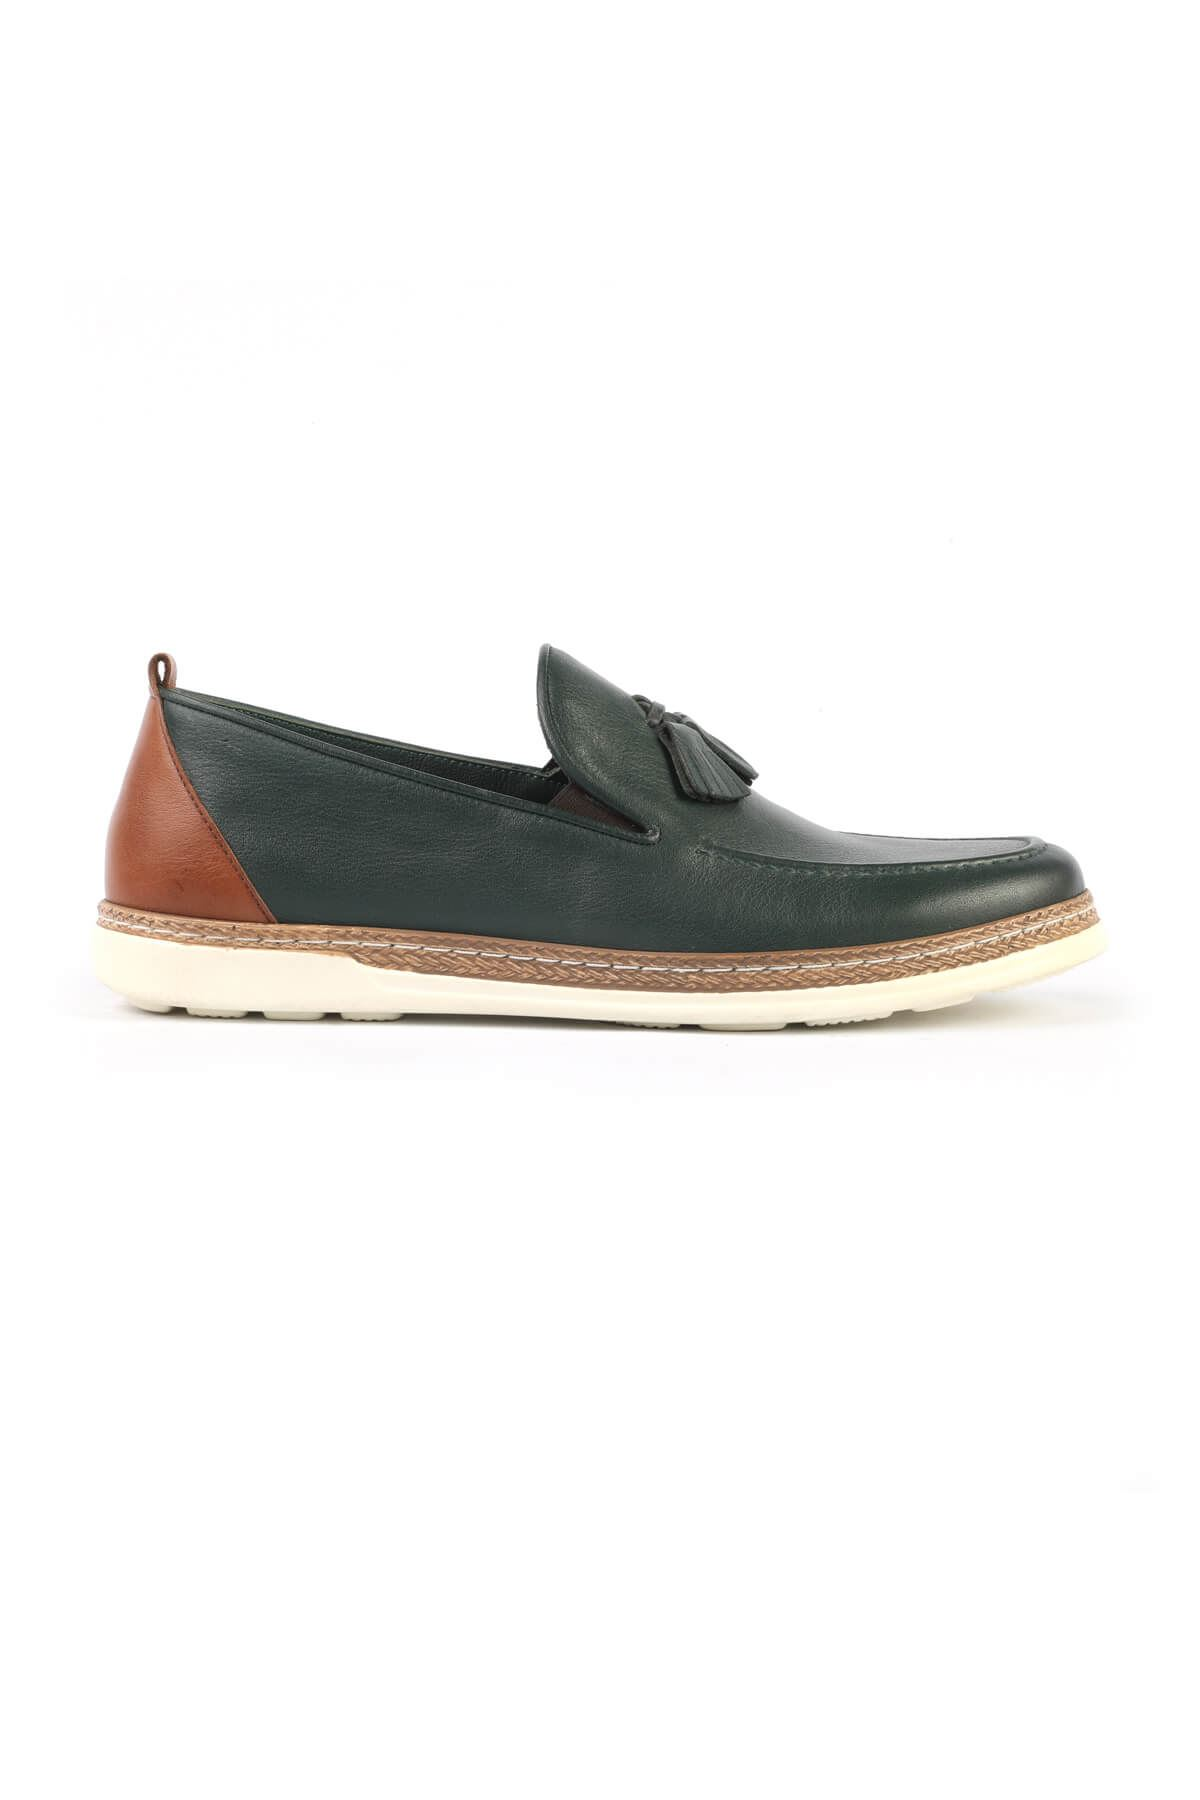 Libero C625 Green Loafer Shoes